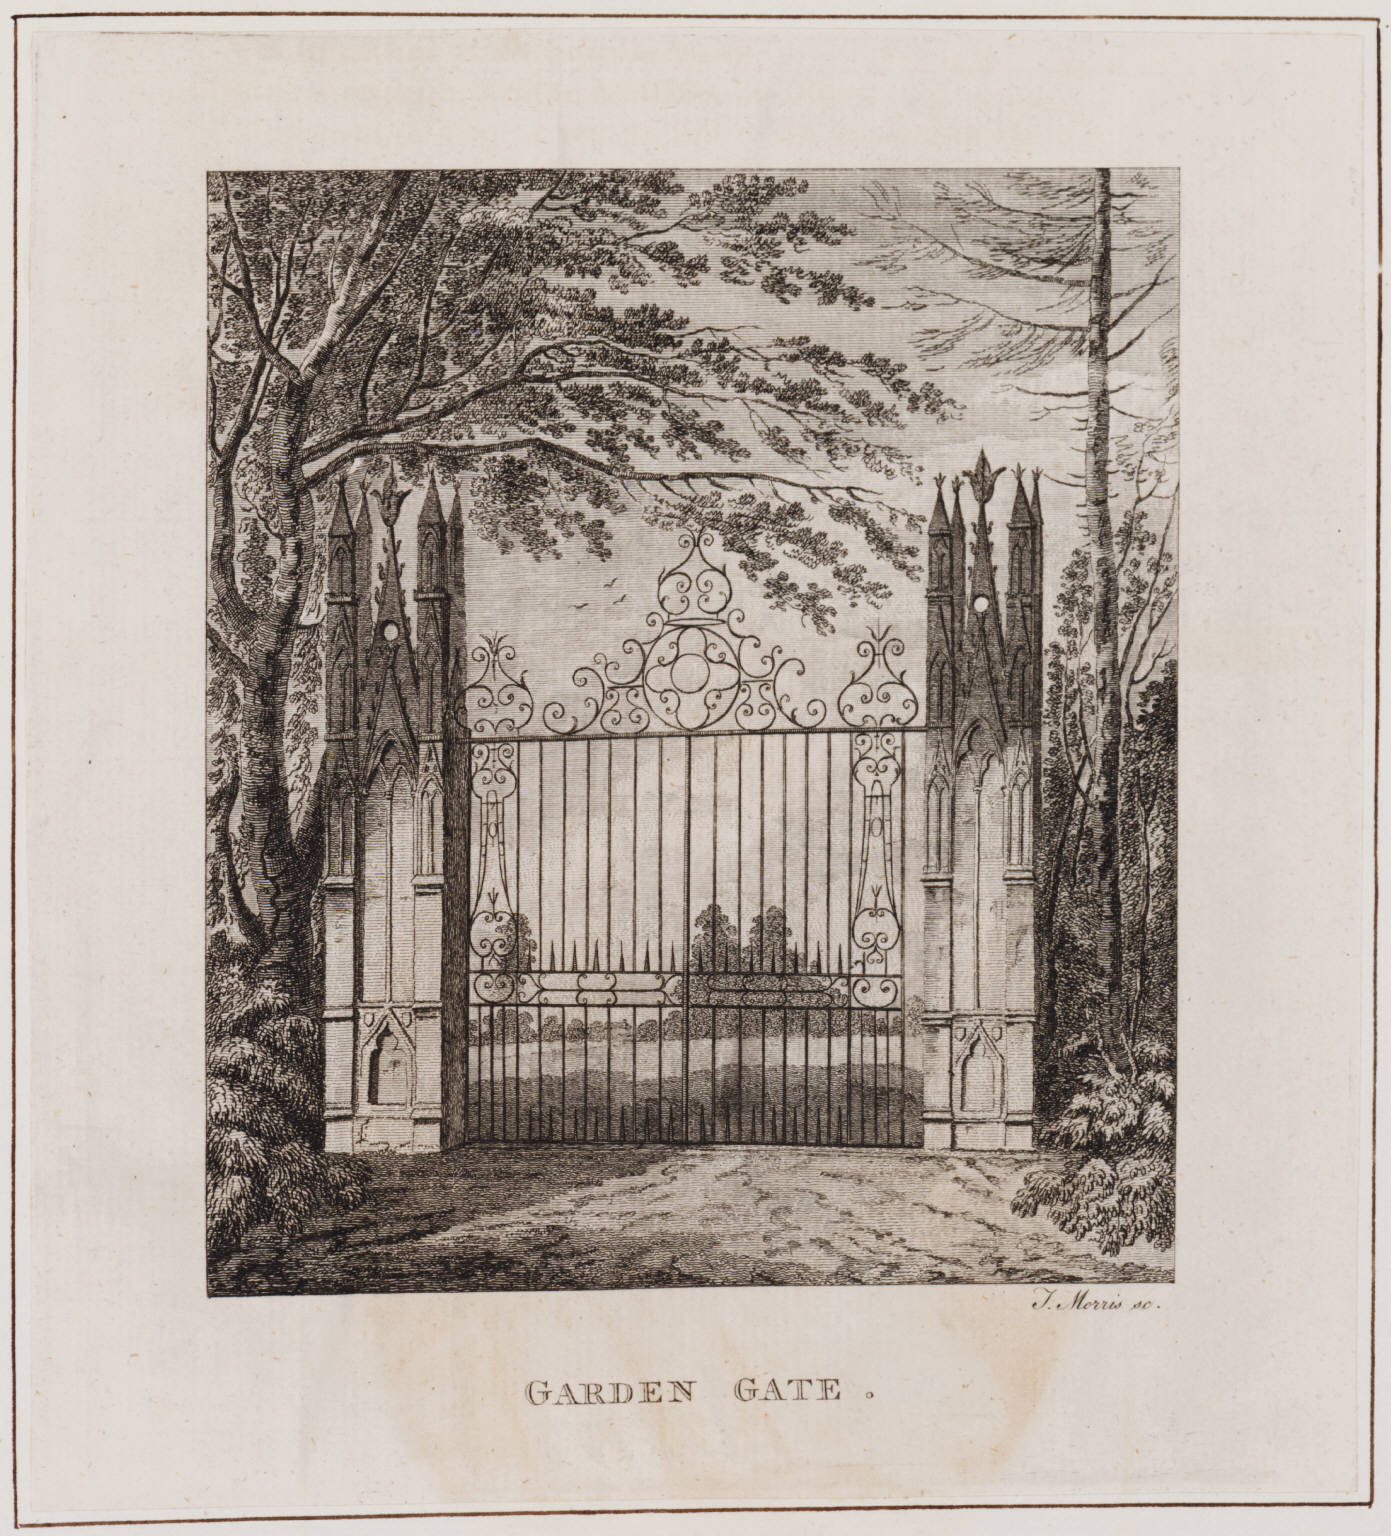 Strawberry Hill Horace Walpole At 300 Rise Bed Cover Angry Birds Double Size 240 X 220 Cm Garden Gate Print From The Description Of Villa